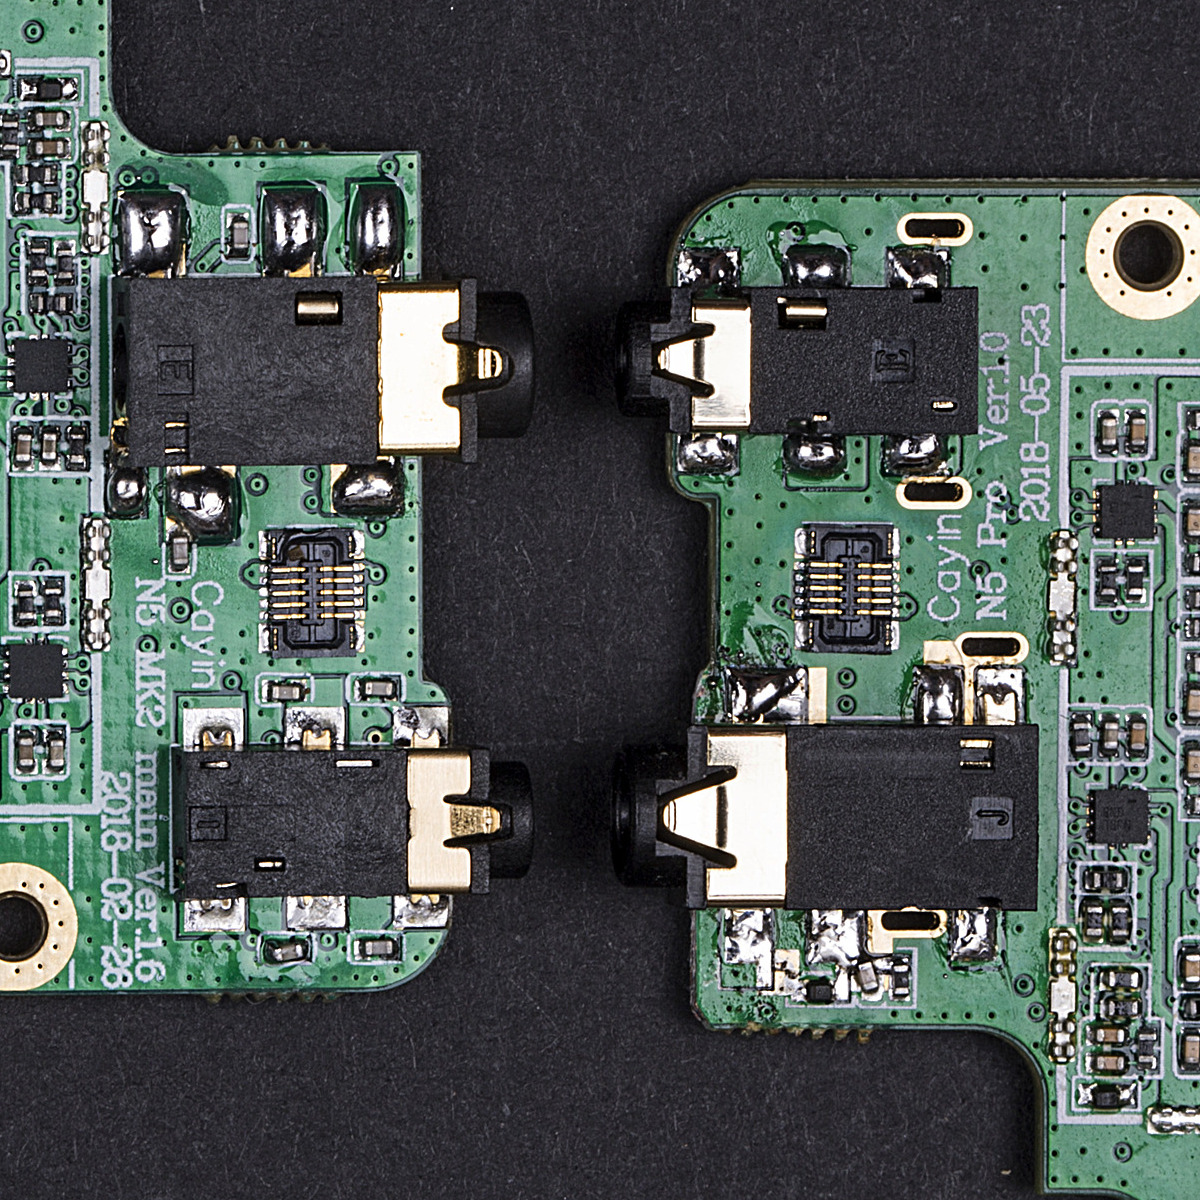 N5iiS and N5ii socket.jpg